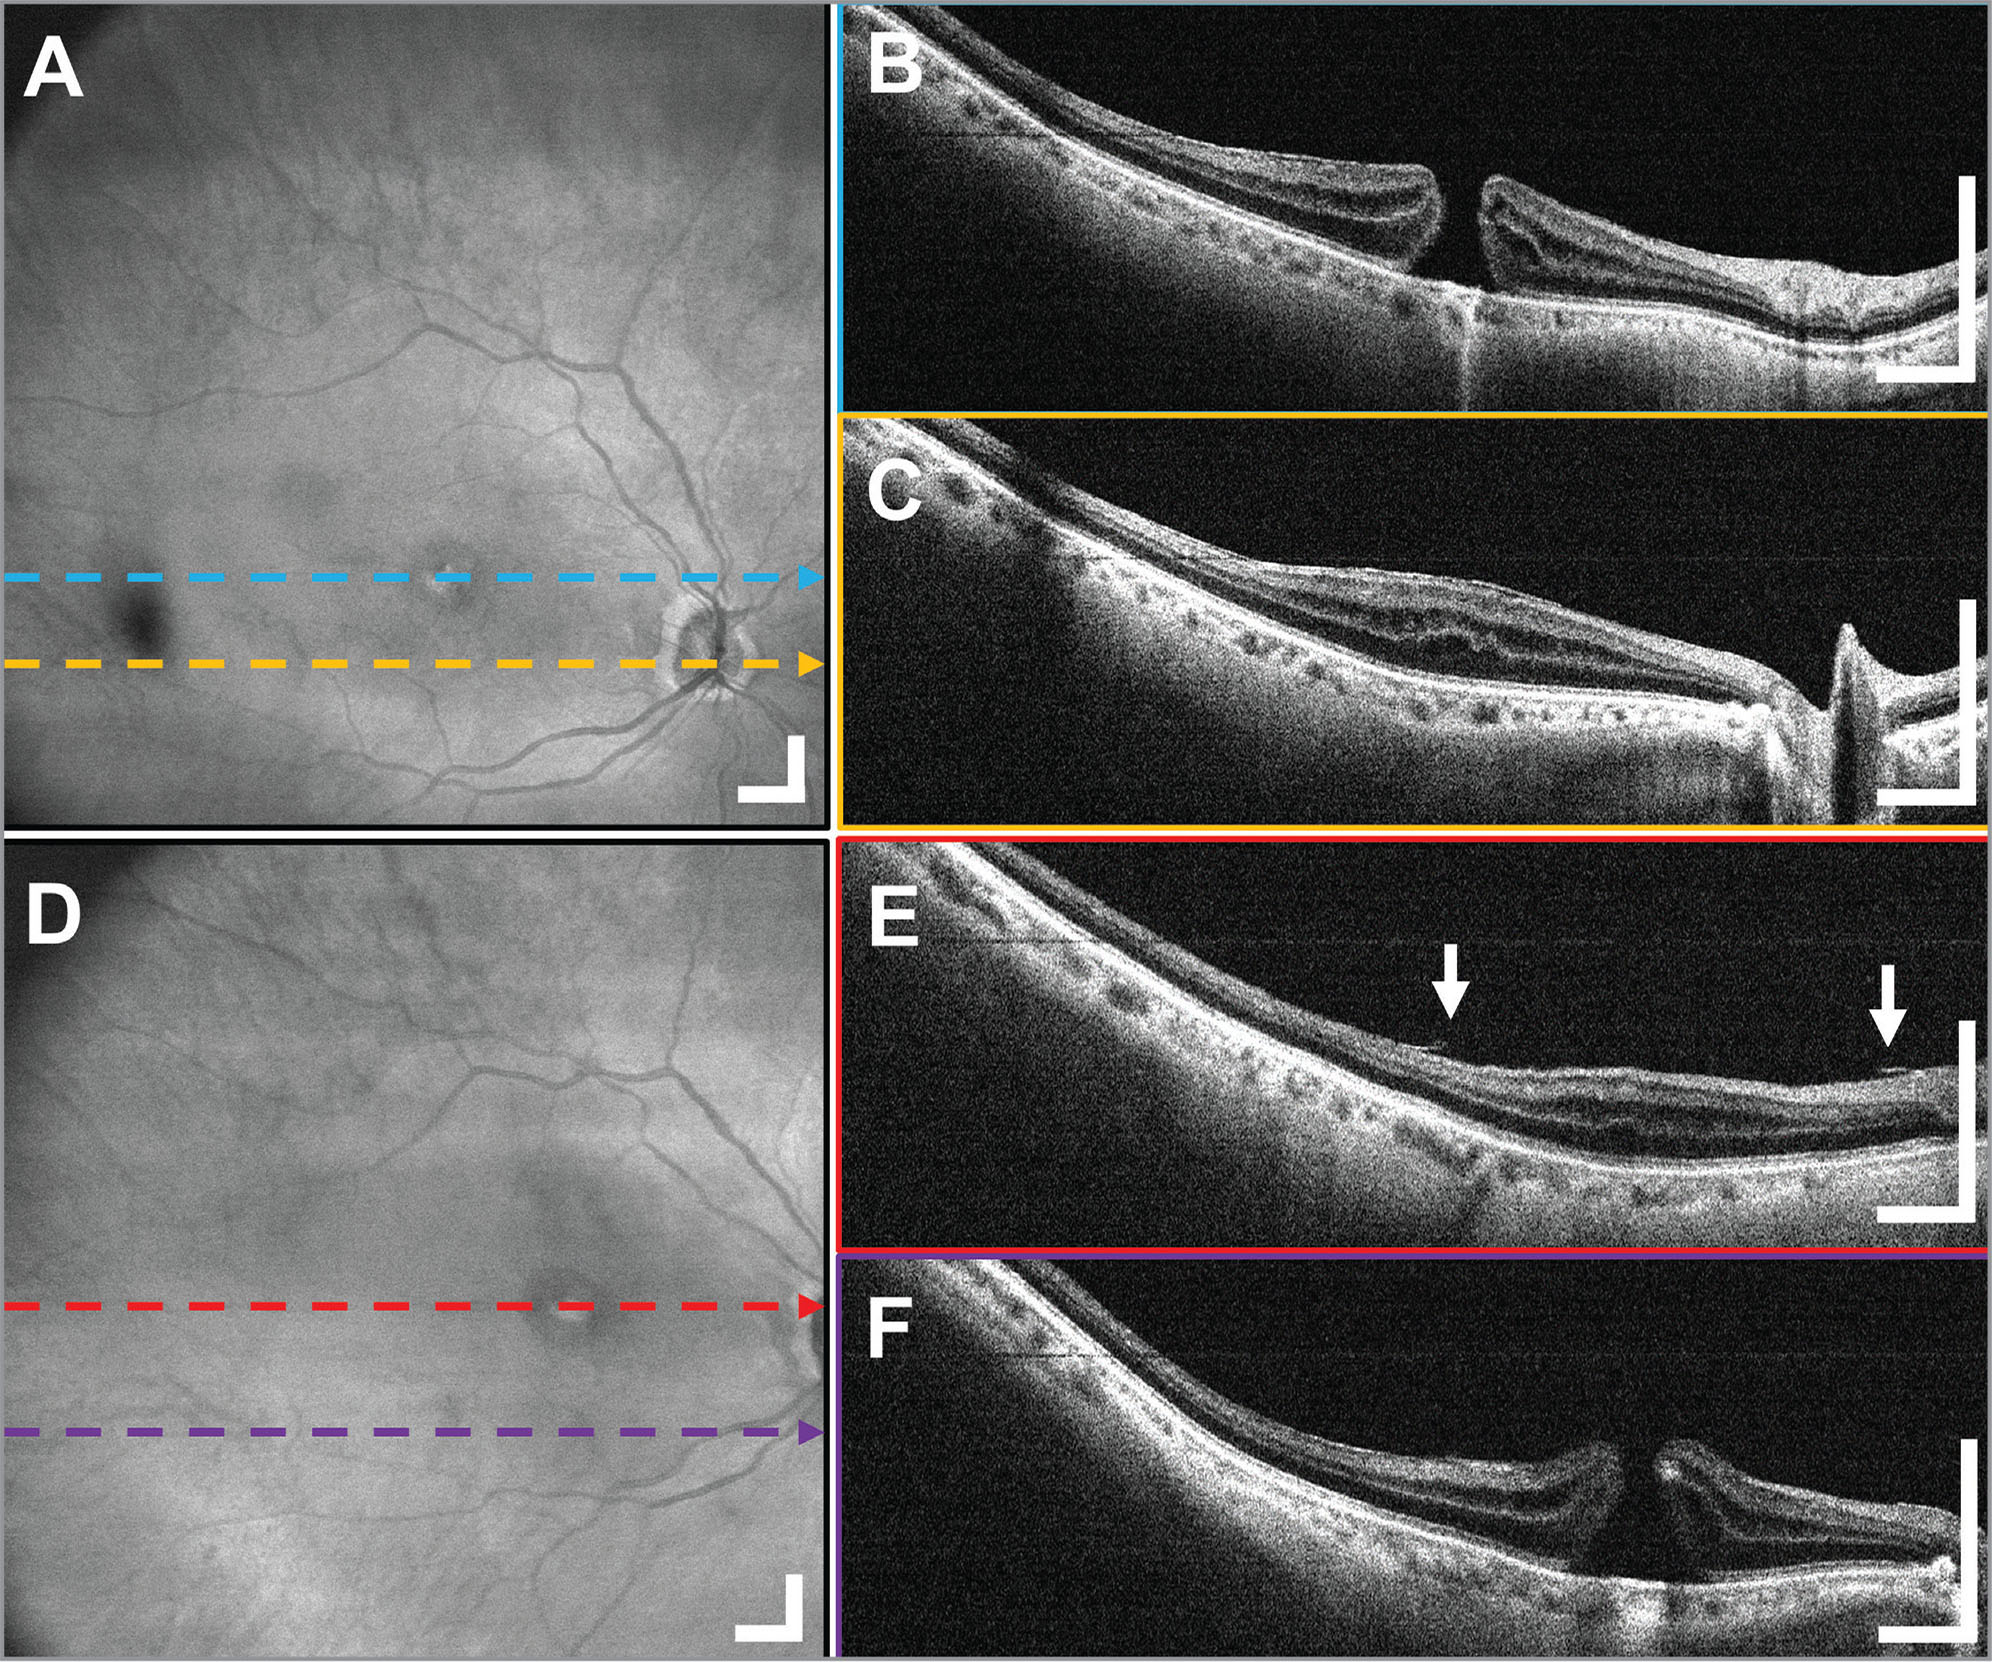 A 12 × 12 mm2 widefield optical coherence tomography (OCT) in a 77-year-old female subject undergoing vitrectomy and internal limiting membrane (ILM) peeling for a macular hole (MH) imaged through the anti-reflection-coated 80 diopter non-contact fundus lens. (A) Widefield en face OCT projection, demonstrating that the MH and surrounding retina can be visualized in a single OCT acquisition. (B, C) The increased retinal thickness and MH can be observed in the B-scans. (D) Widefield en face OCT projection with (E, F) the B-scans from the postoperative widefield OCT data show the full extent of the ILM membrane peel around the MH. The decreased tangential traction on the edges of the hole can also be appreciated. Arrows indicate the edges of peeled ILM. Displayed B-scans are averages of five adjacent B-scans. Scale bars are 1 mm.